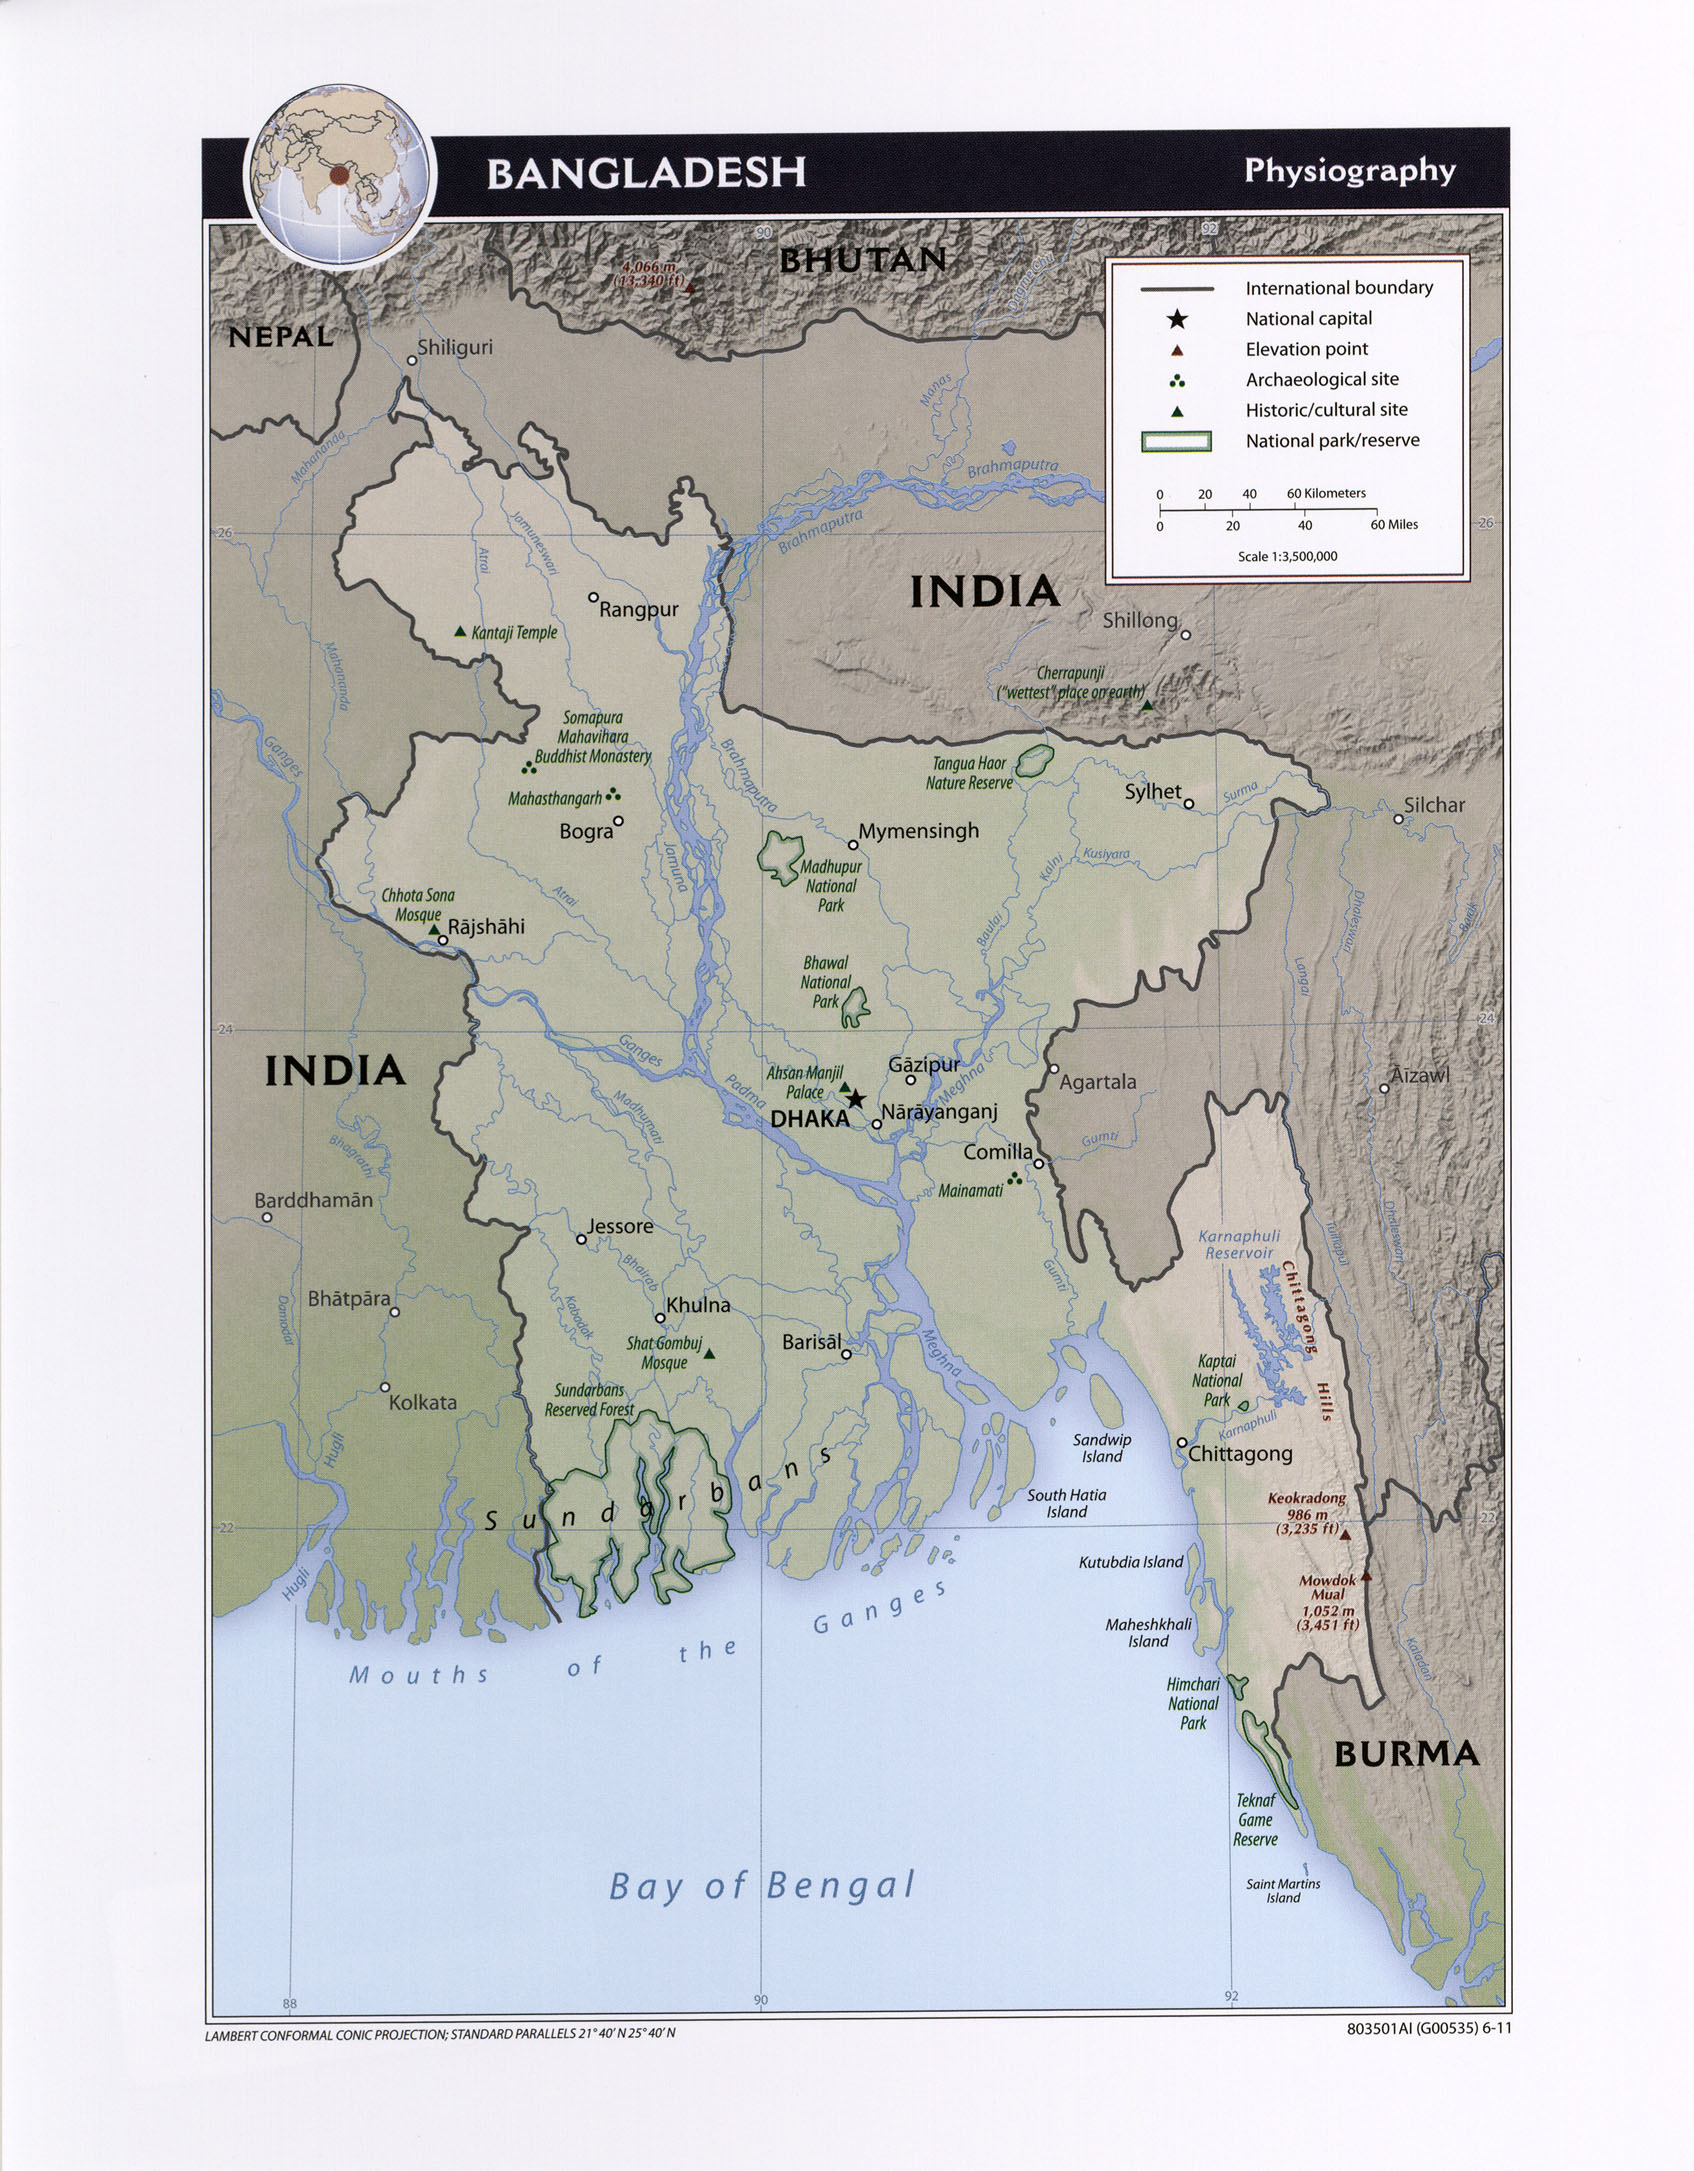 Bangladesh maps perry castaeda map collection ut library online map collection bangladesh maps gumiabroncs Choice Image